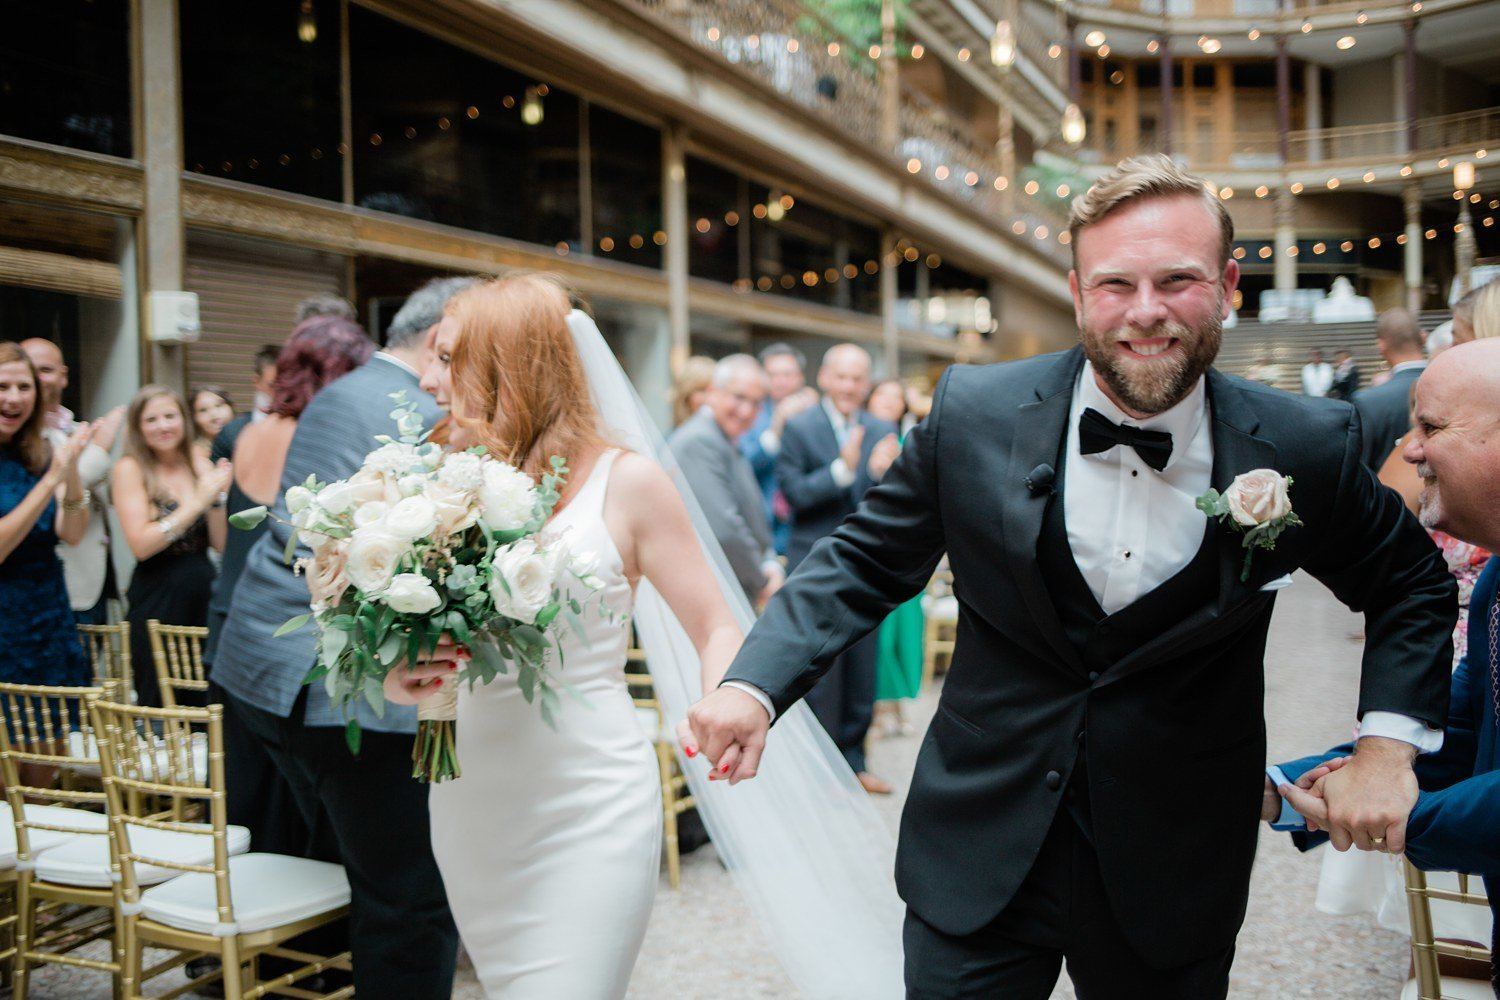 Hyatt Arcade Cleveland Candid Wedding Marissa Decker Photography